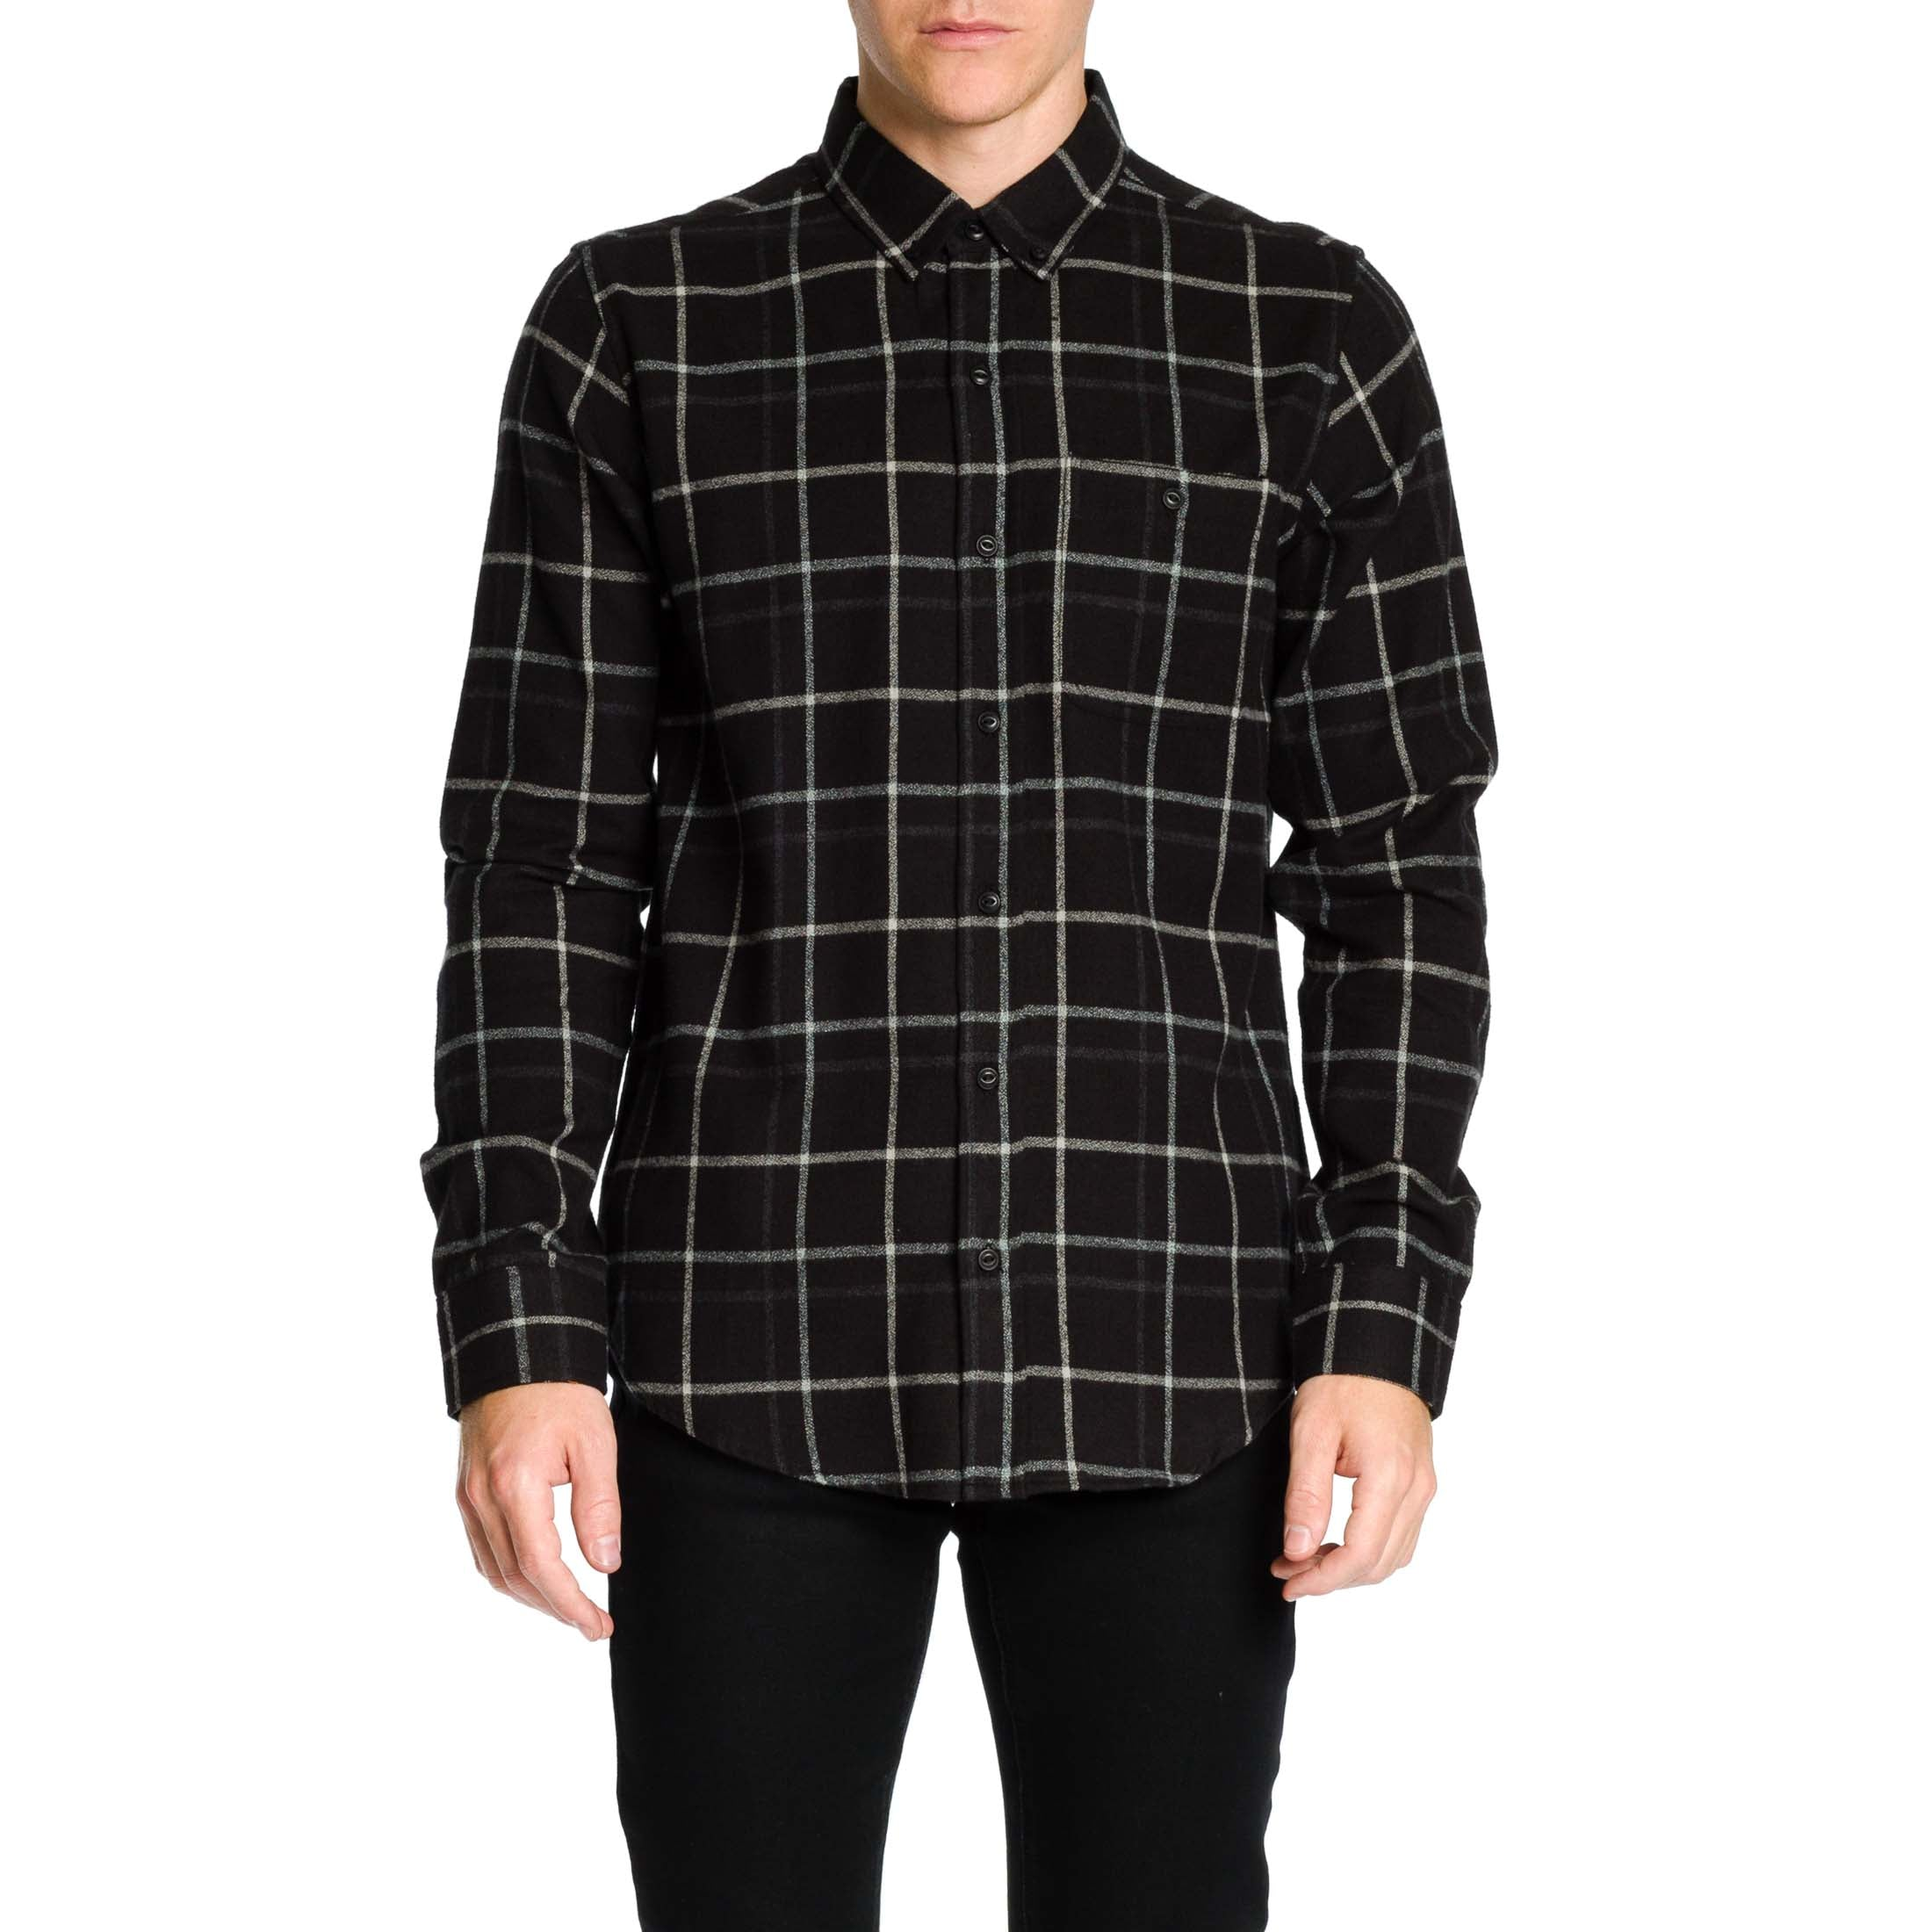 Bridges Shirt - Black - Ezekiel Clothing